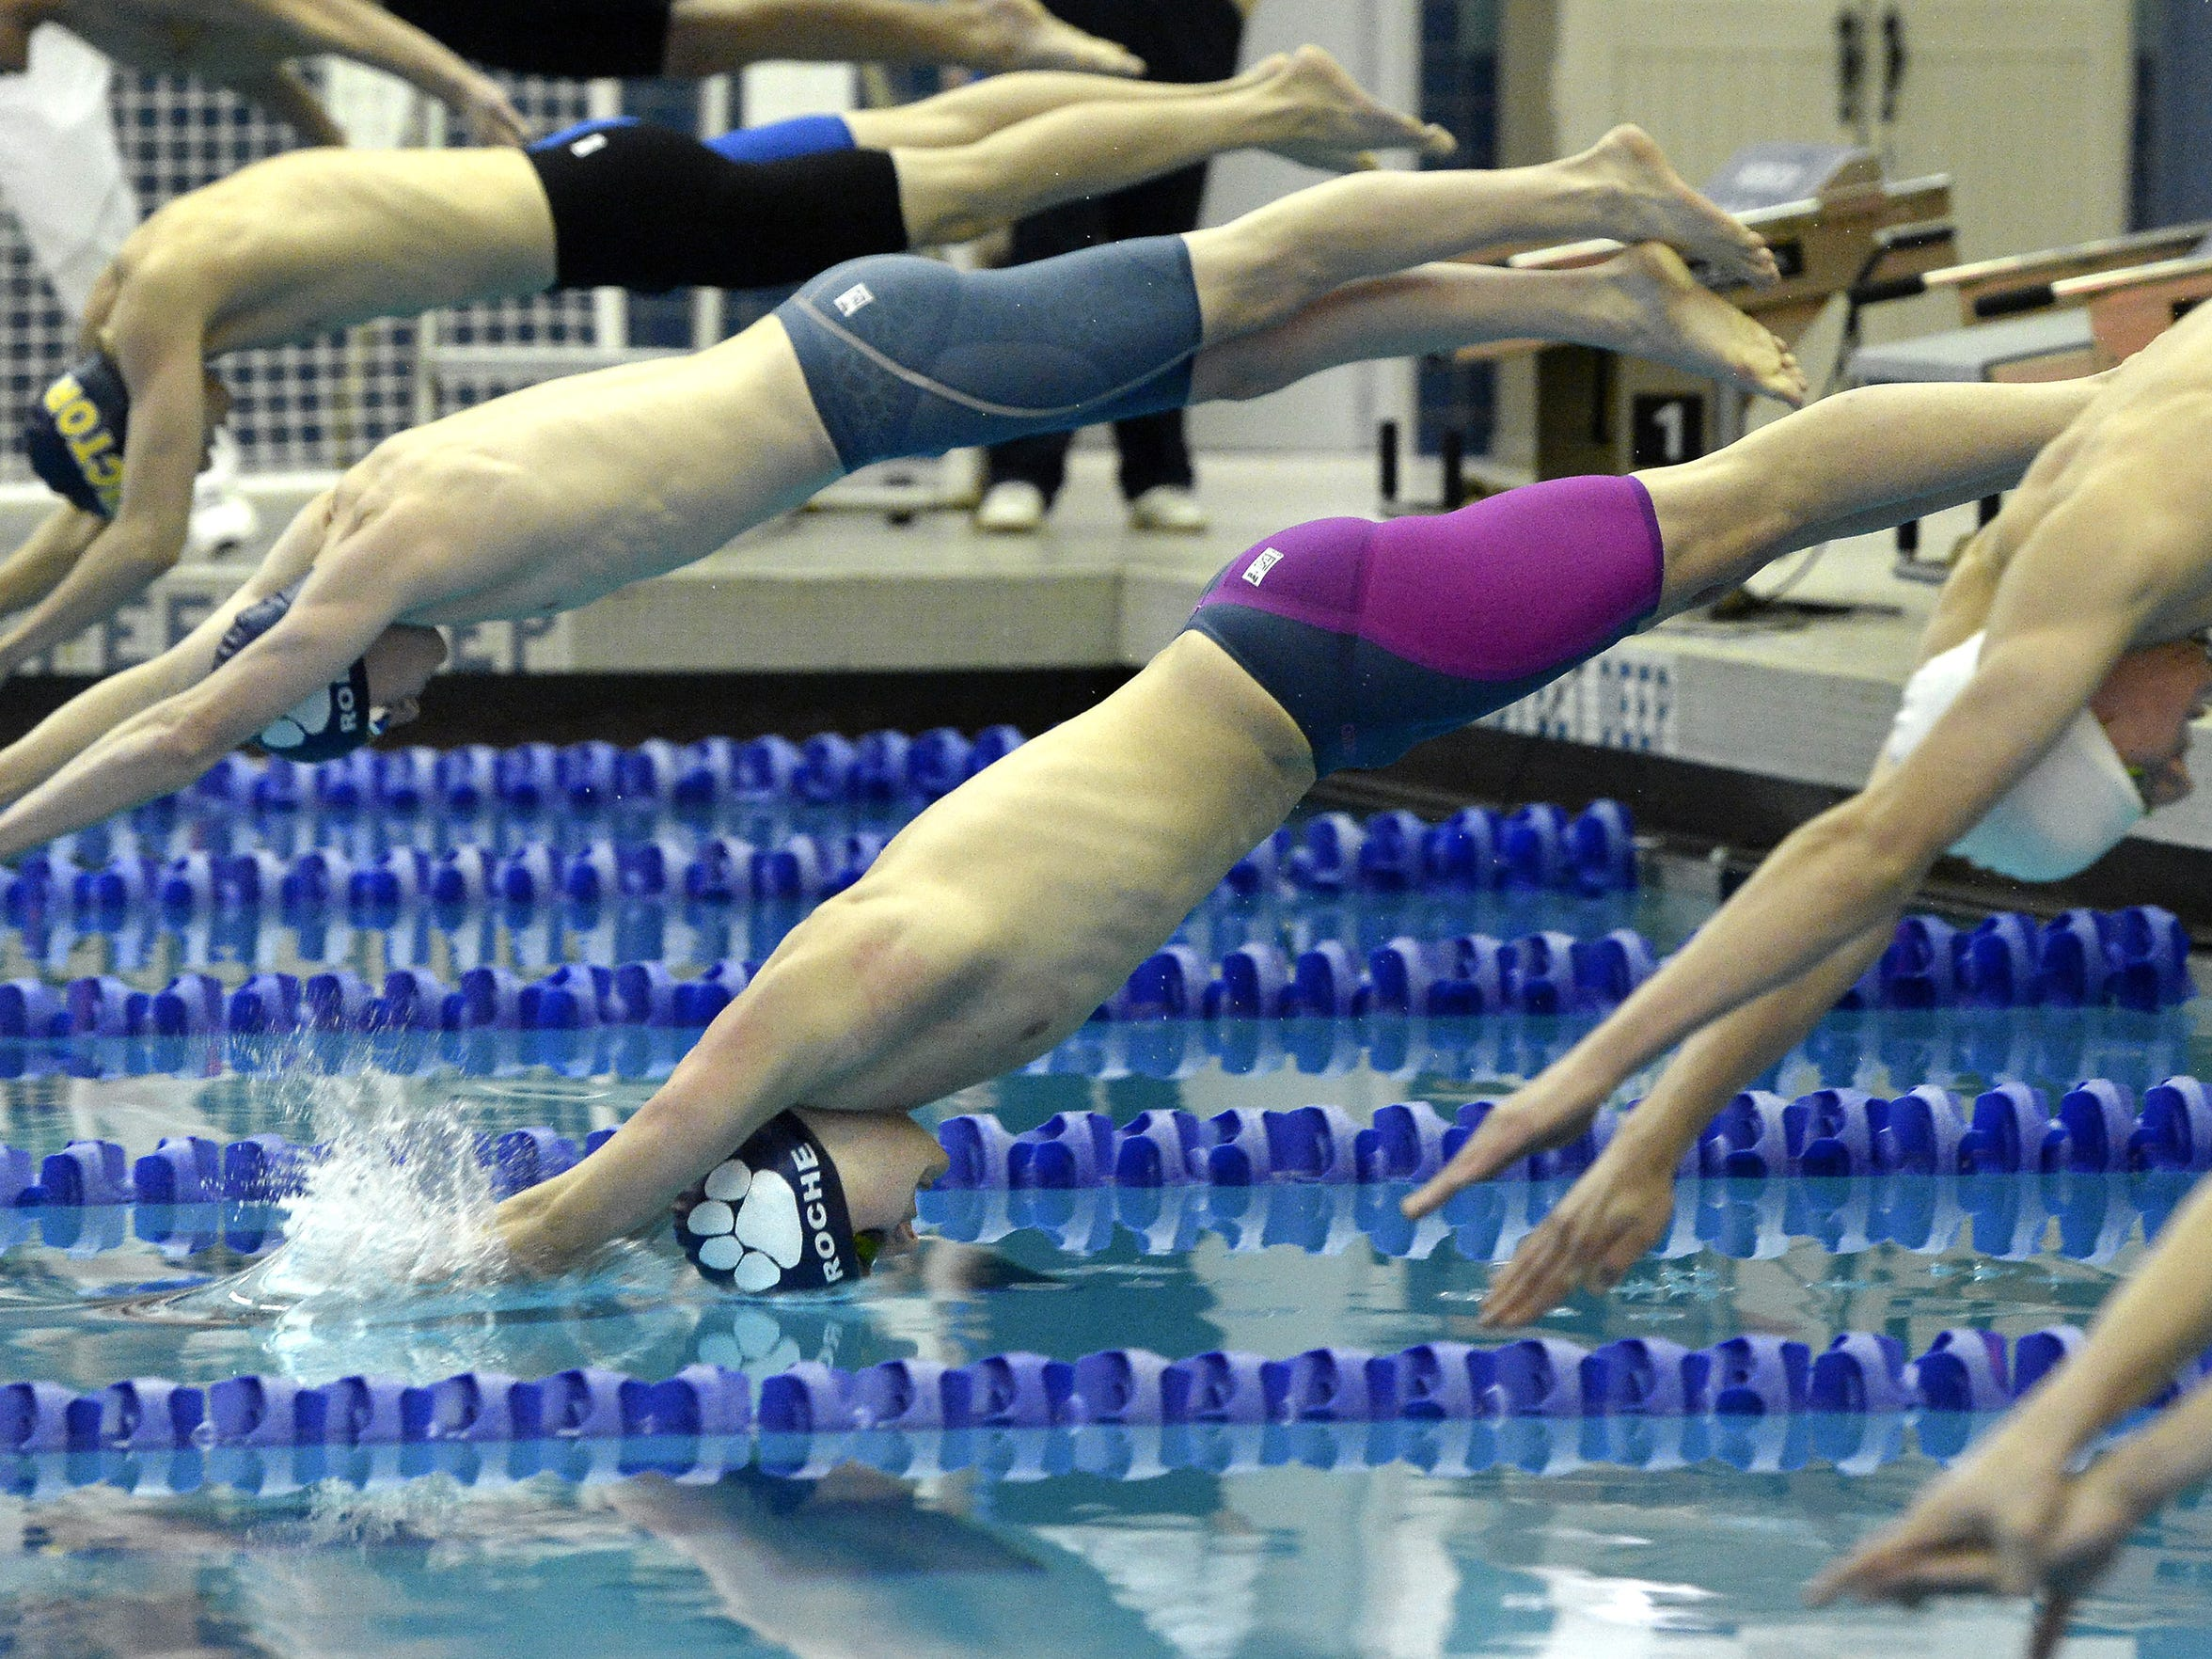 Pittsford's Sam Roche enters the water on his way to winning the final of the 100 yard freestyle with a meet and school record time of 46.13 during Section V Class A Swimming Championships at the Webster Aquatic Center on Friday, Feb. 16, 2018.